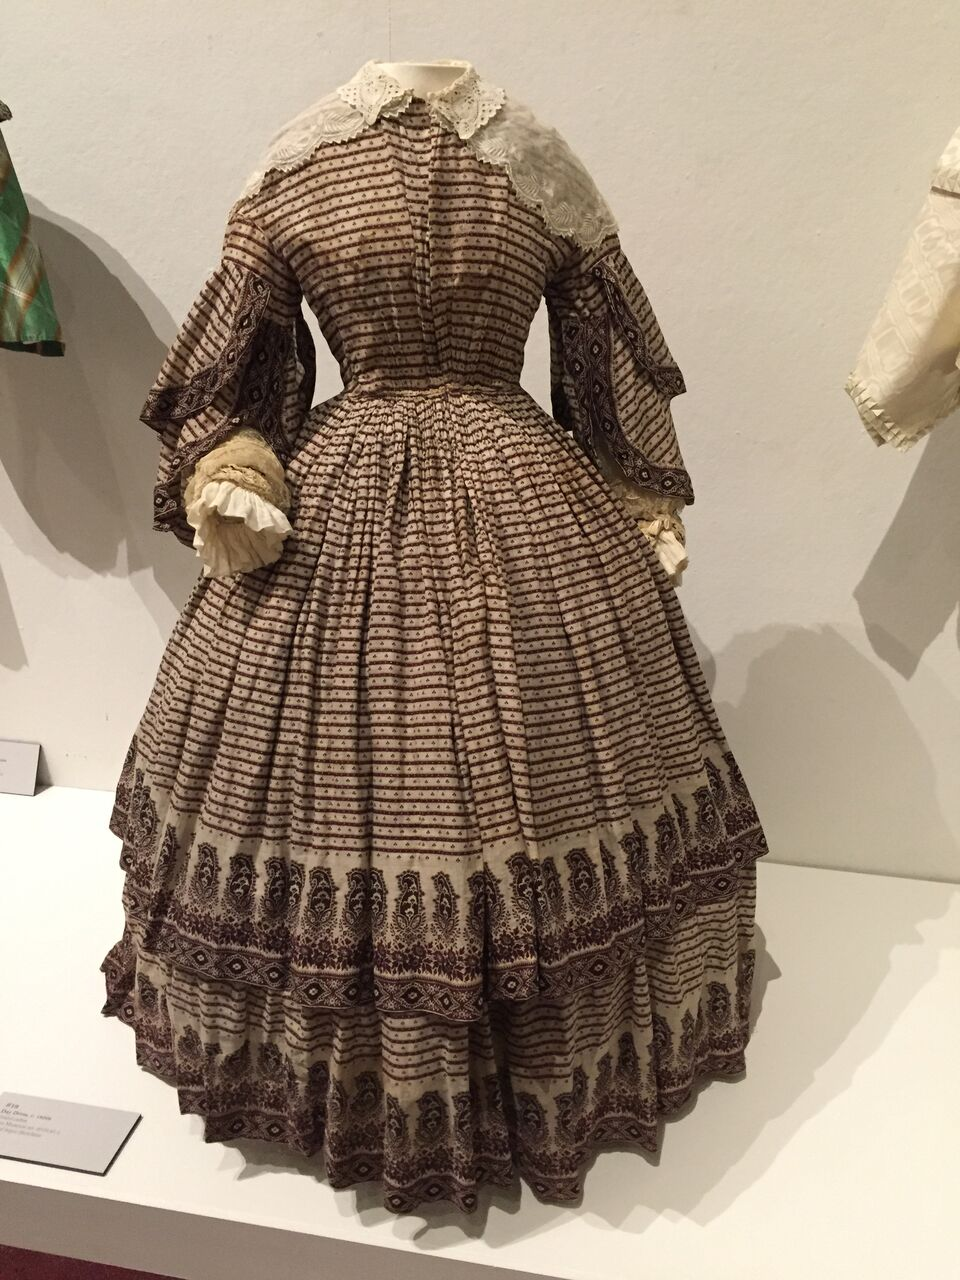 Upcoming Victorian & Edwardian Dress Exhibit - Victoria Mansion